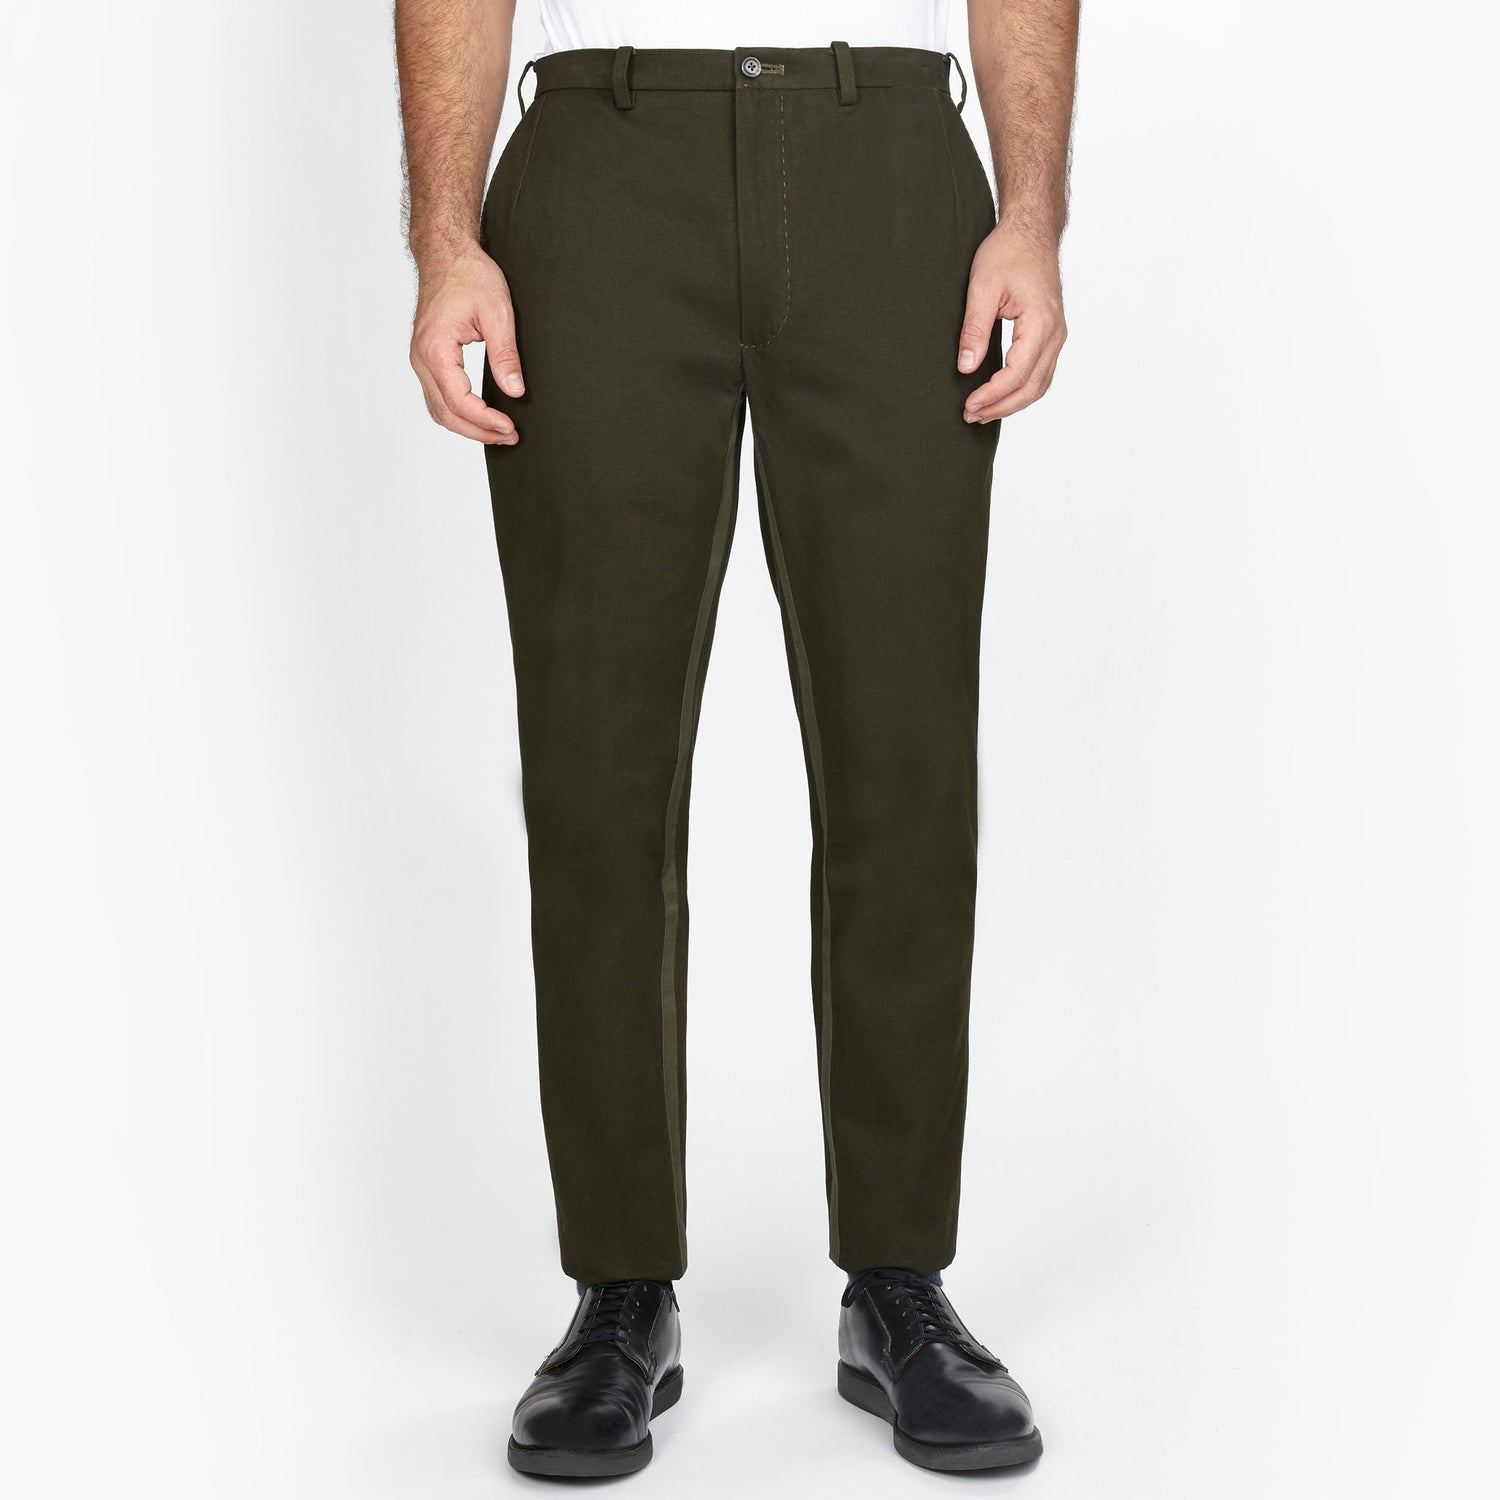 The Olive Paradox Plaid Trouser